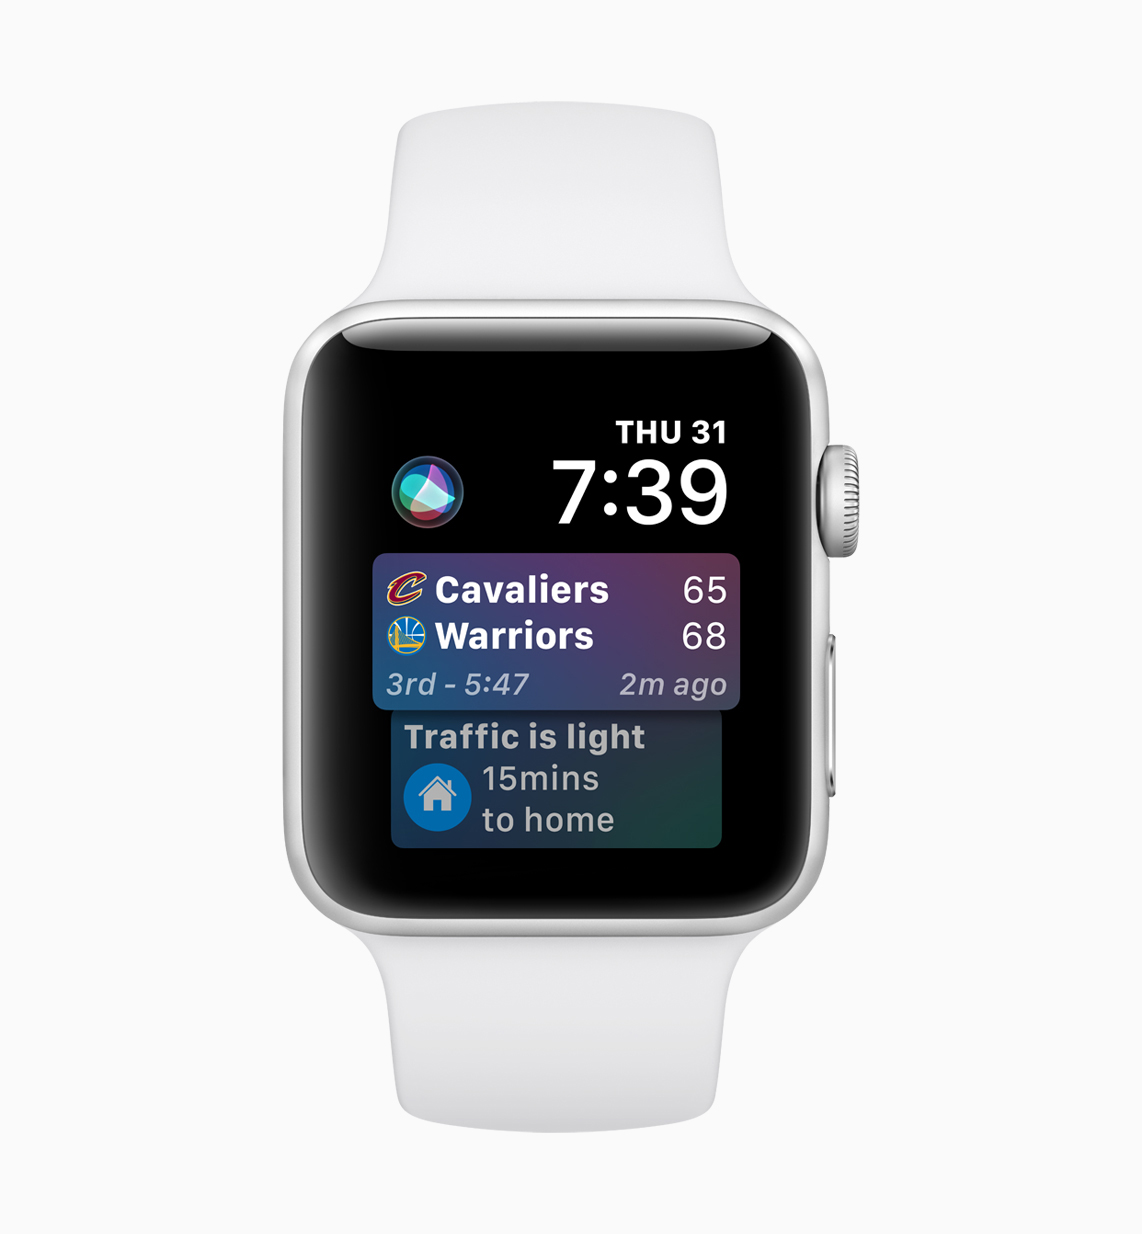 Apple Watch Siri face in watchOS 5 showing commute times from Maps